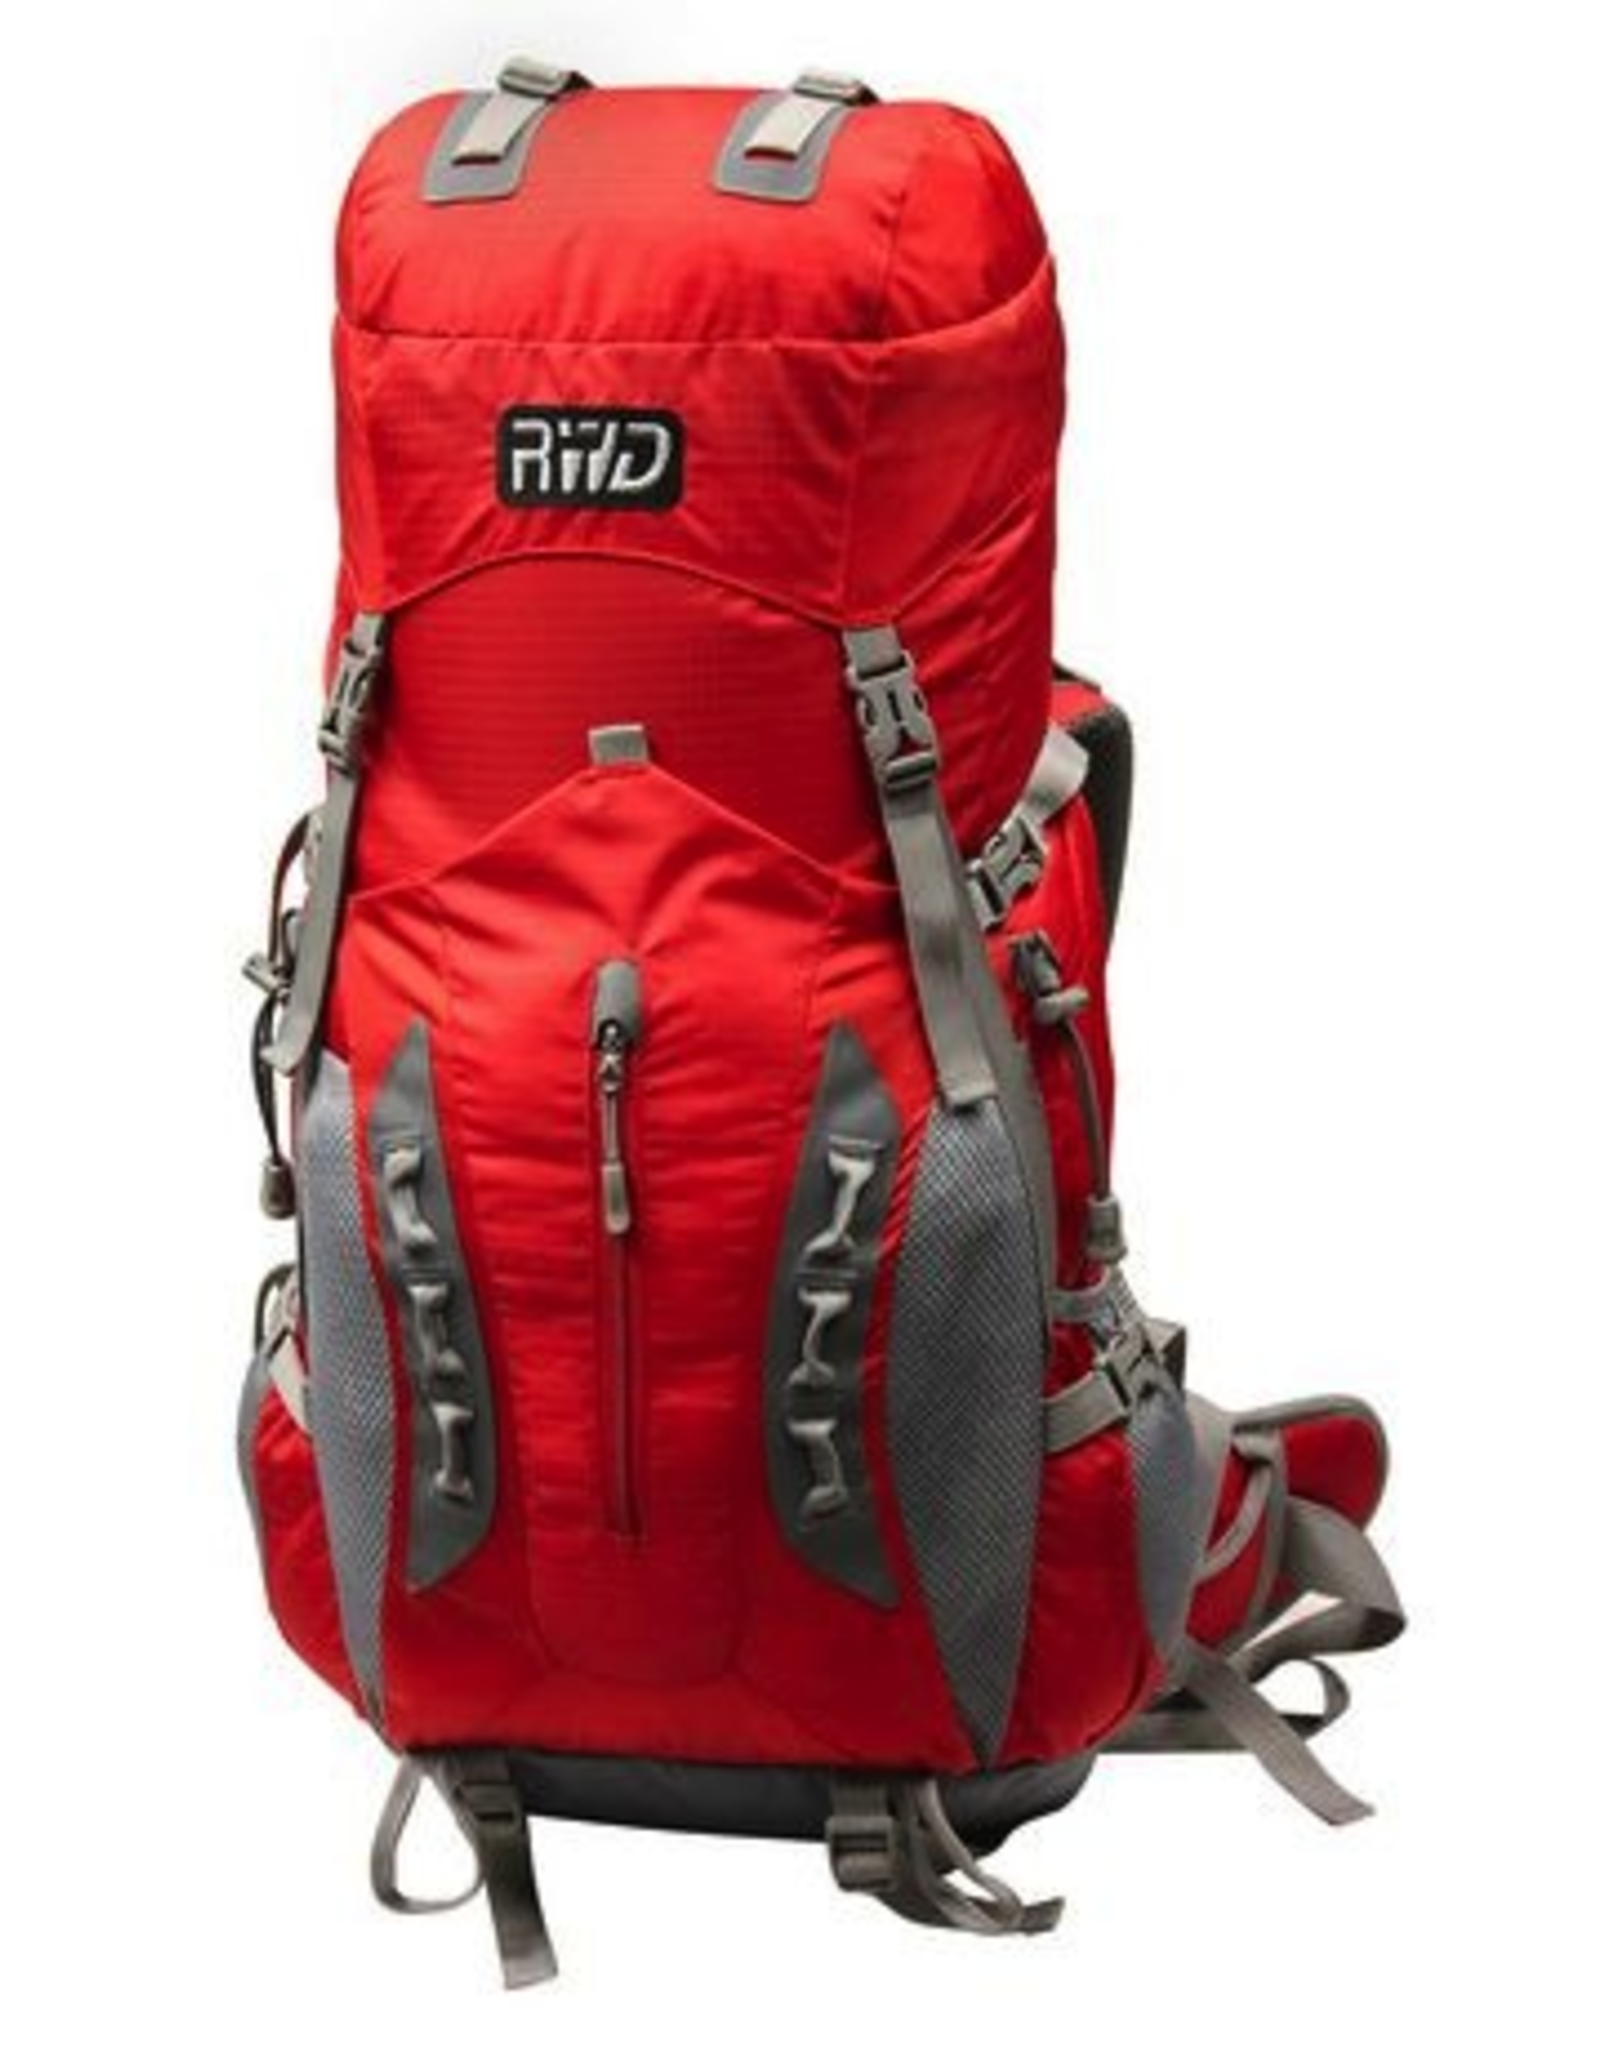 Rockwater Designs Rockwater Designs Napier Backpack 50L, Red